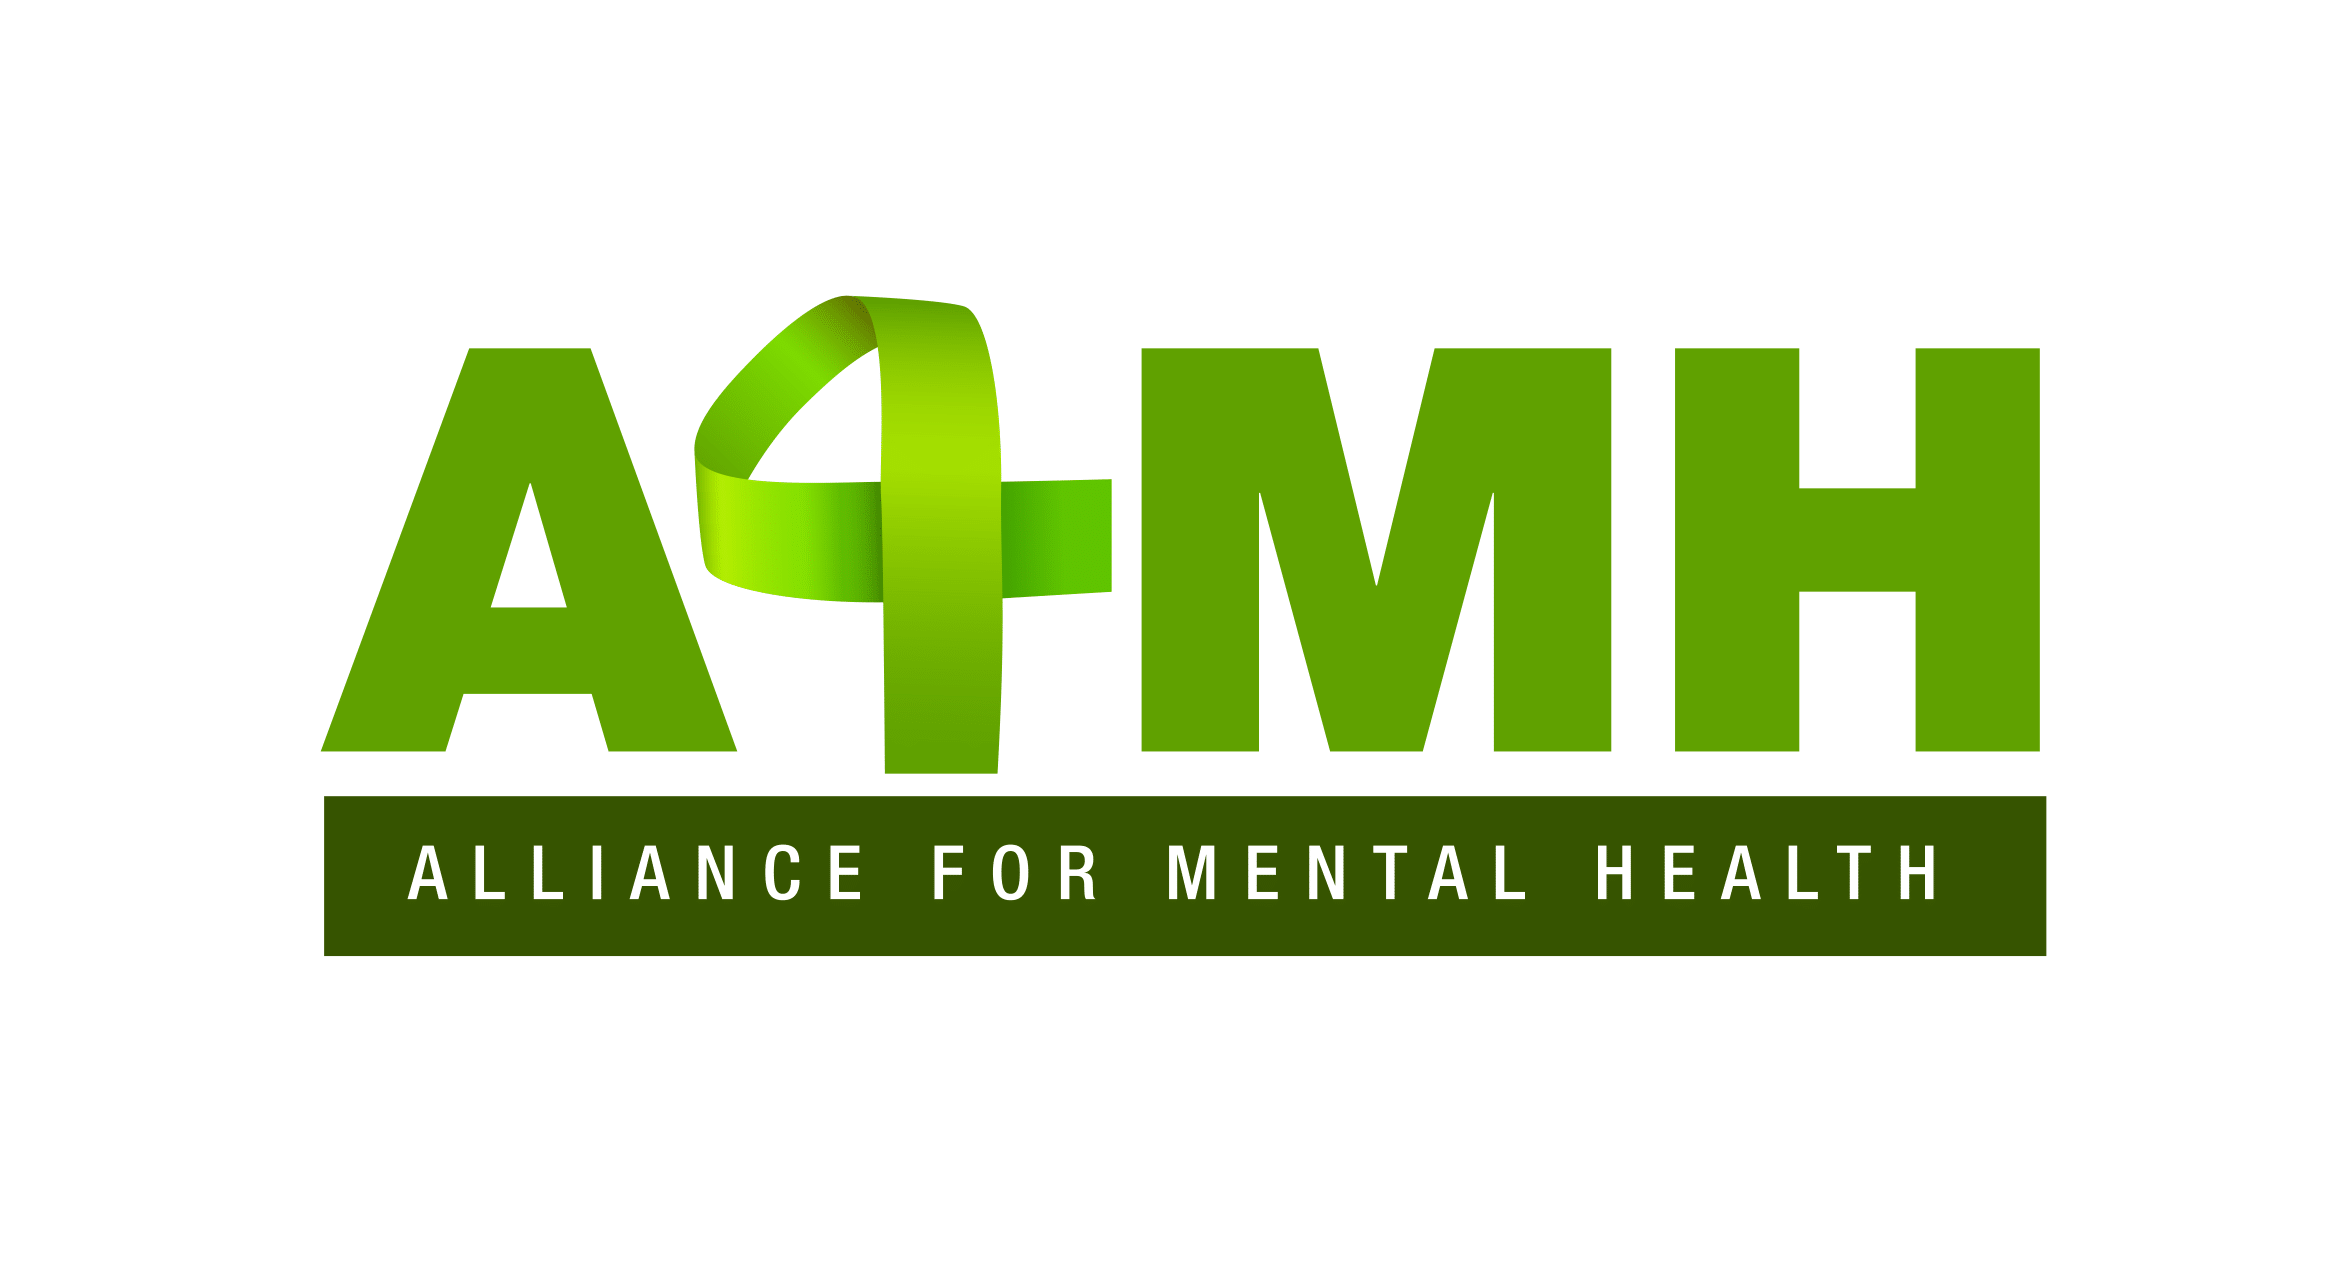 Alliance for Mental Health welcomes relaunch of mental health strategy